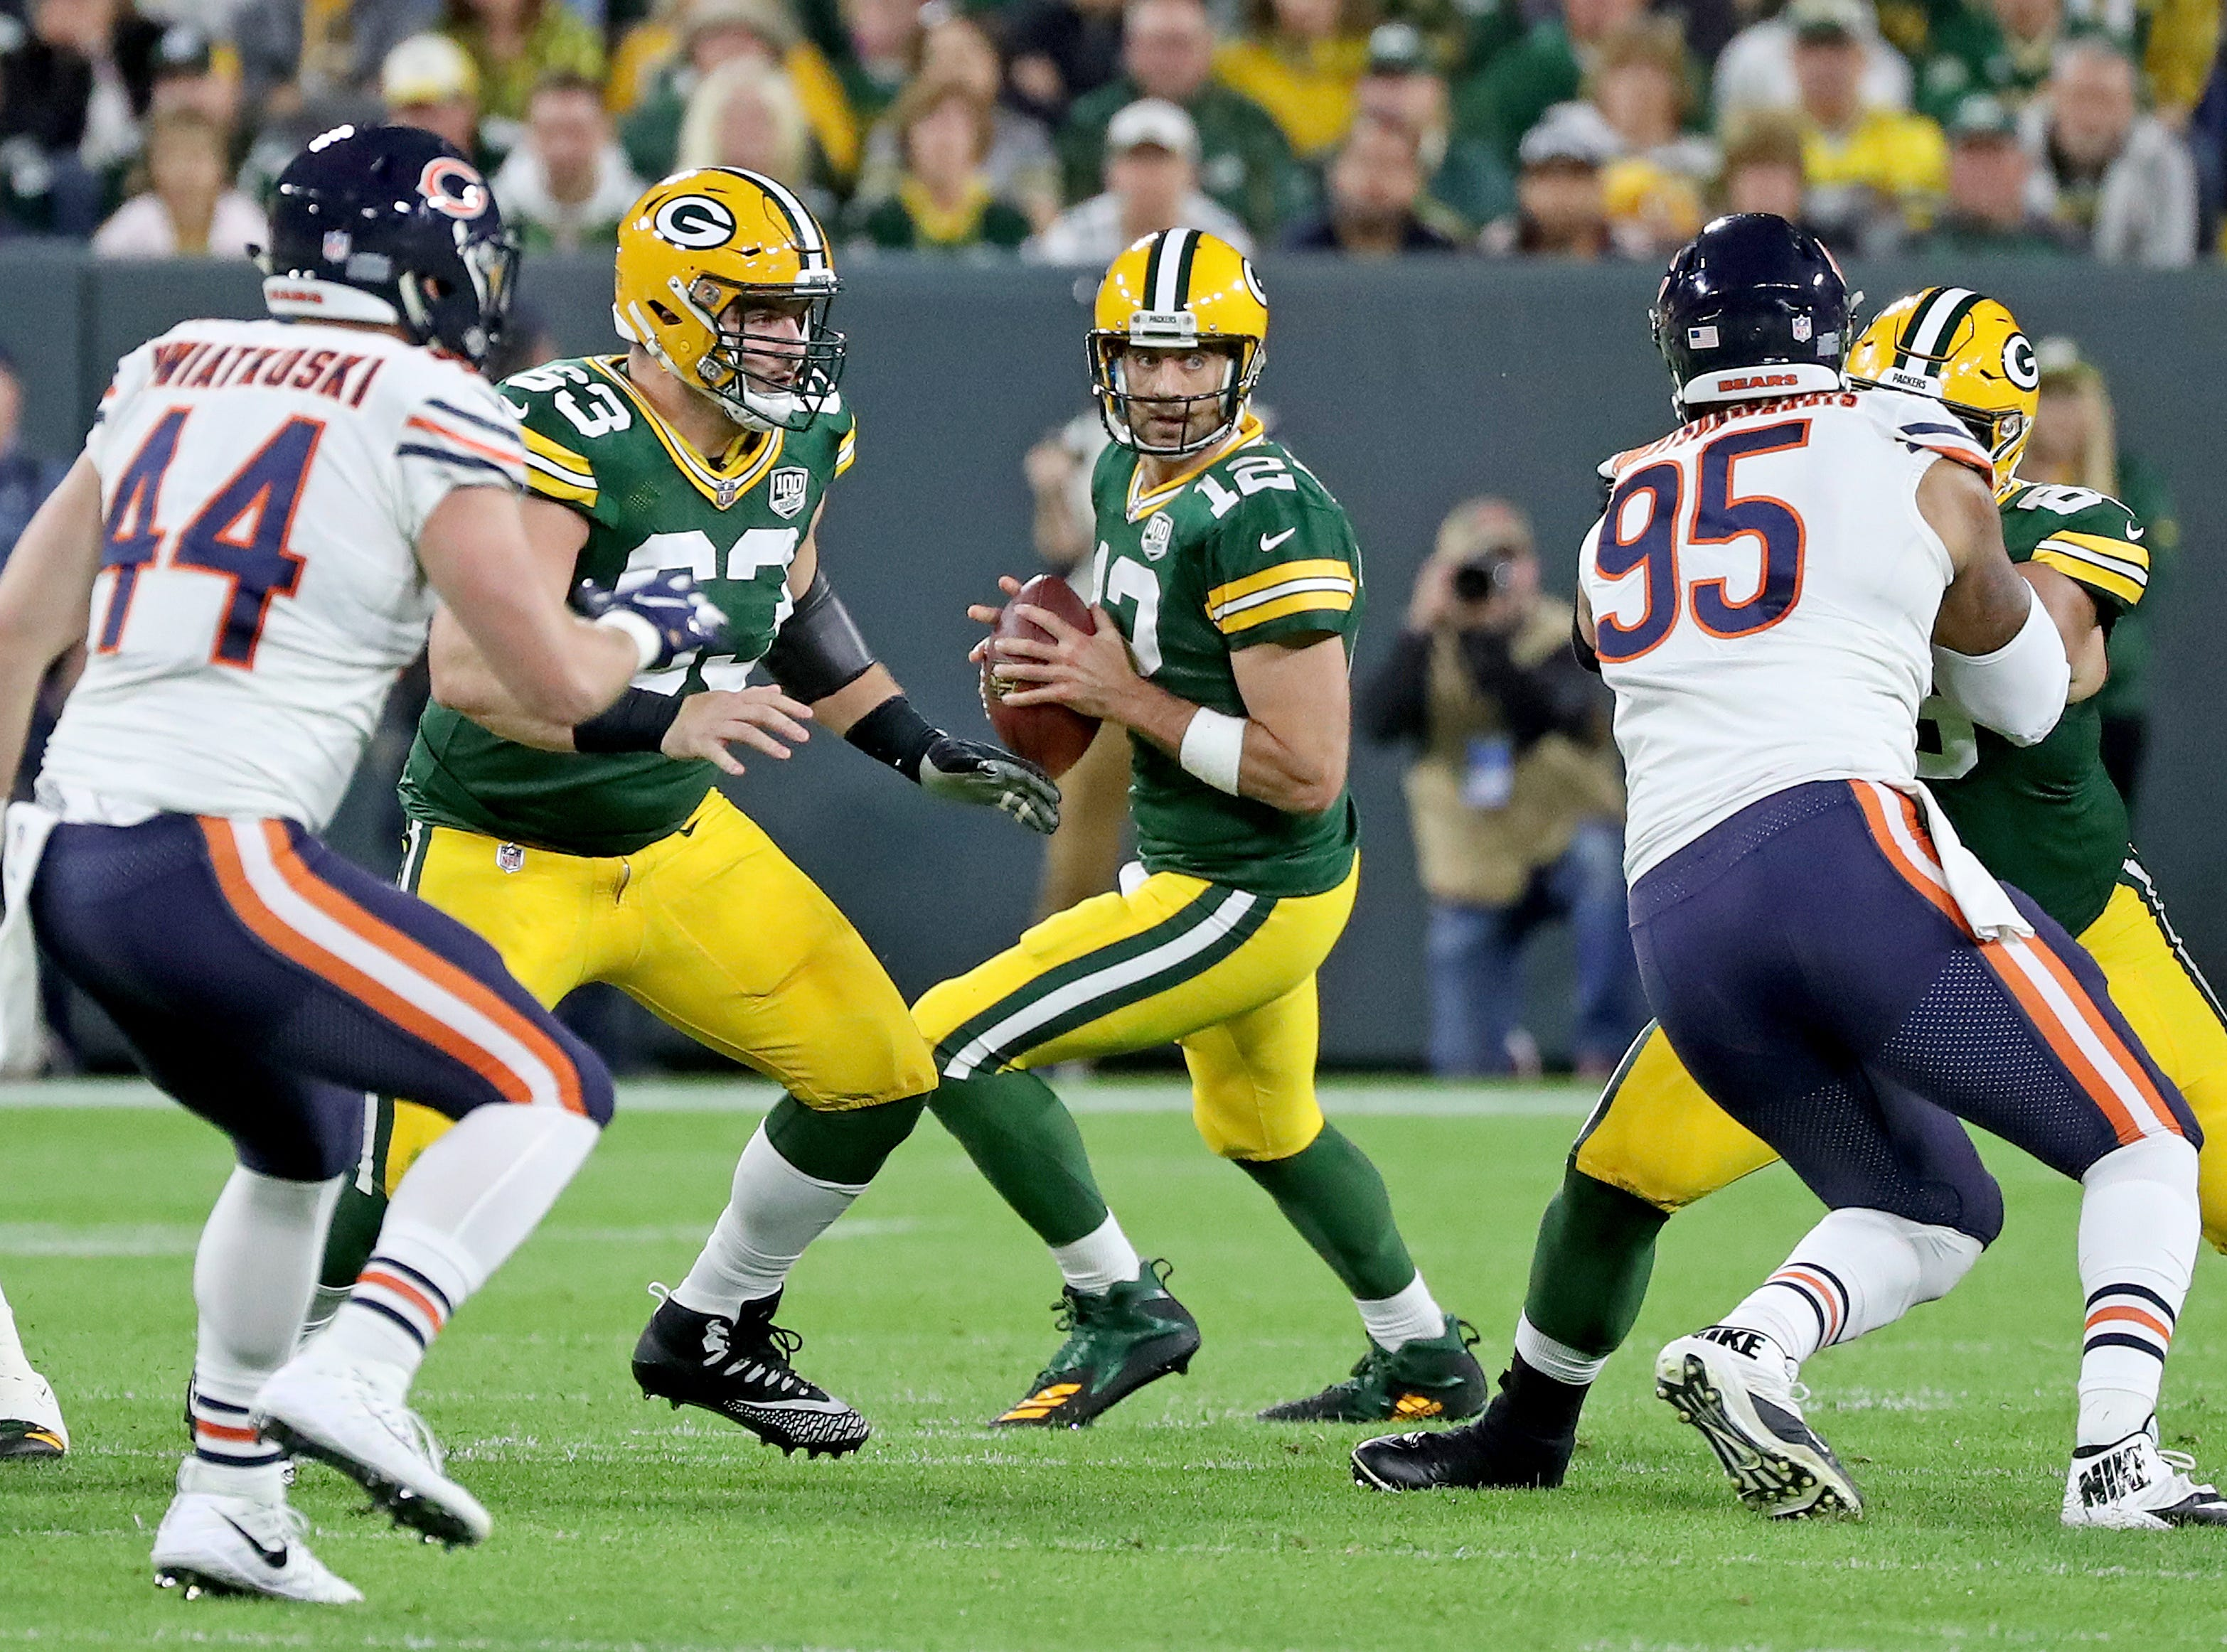 Green Bay Packers quarterback Aaron Rodgers (12) sets up in the pocket in the third quarter against the Chicago Bears Sunday, September 9, 2018 at Lambeau Field in Green Bay, Wis. Jim Matthews/USA TODAY NETWORK-Wisconsin